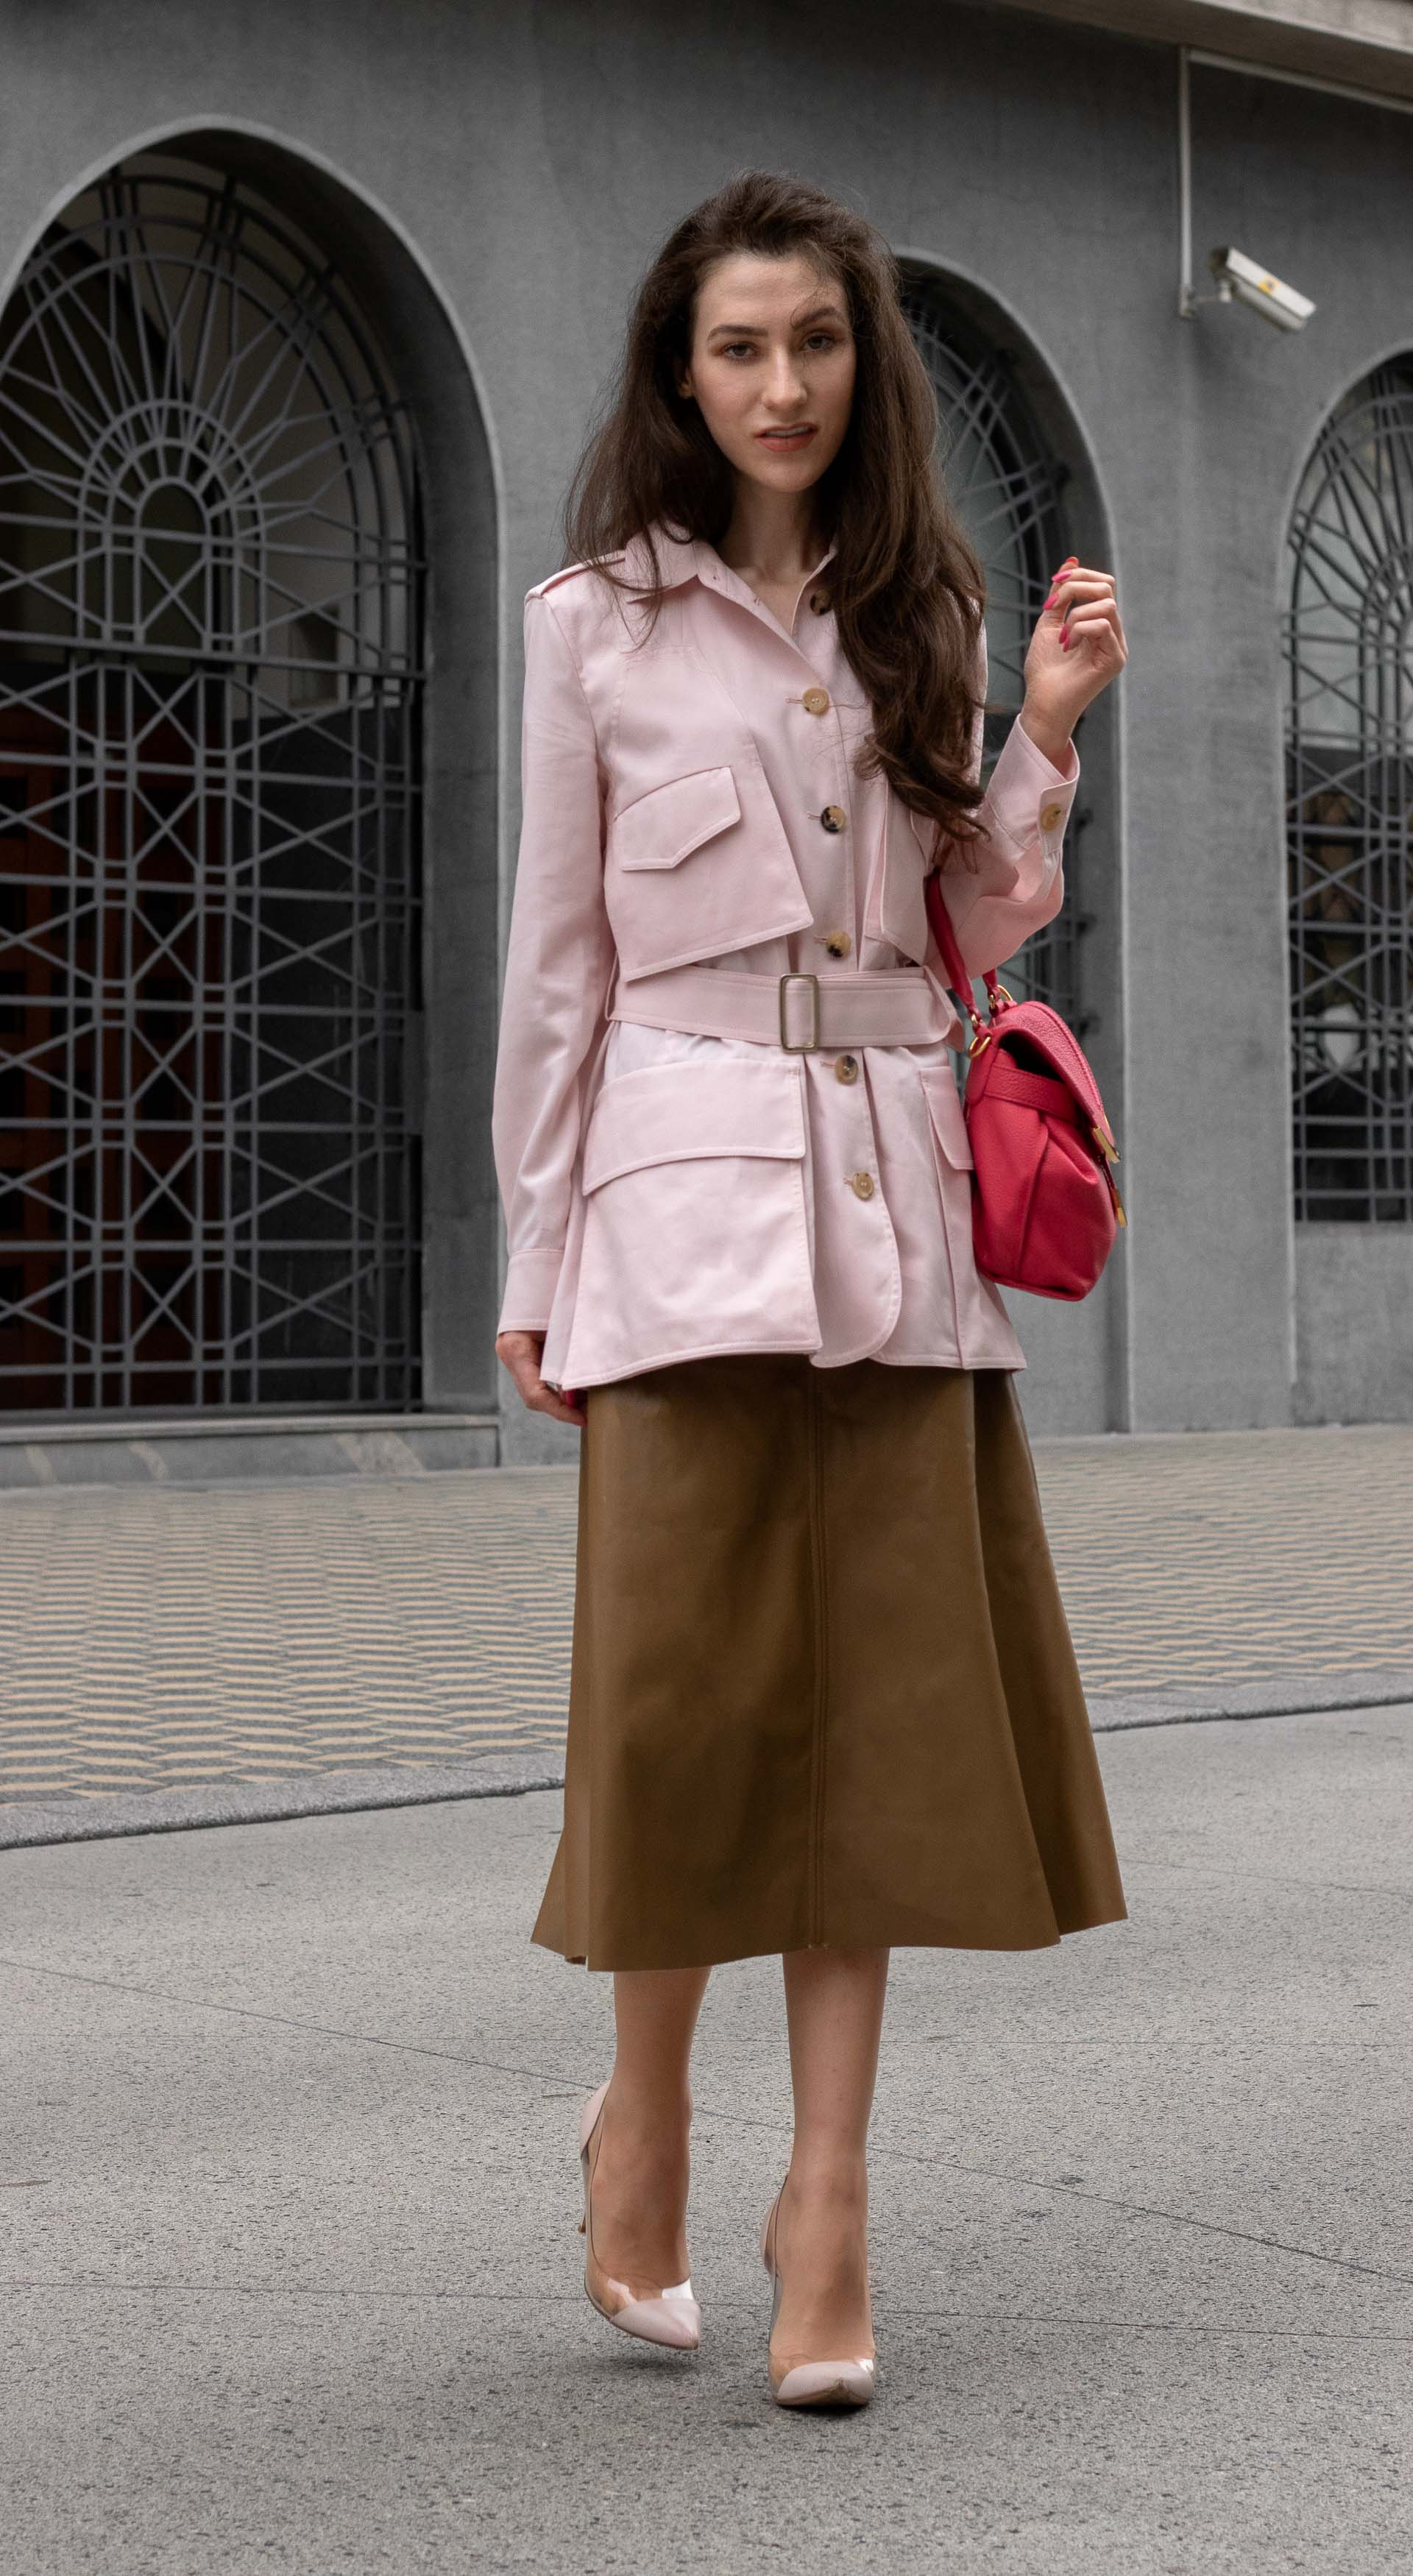 Fashion blogger Veronika Lipar of Brunette from Wall Street wearing Max Mara safari jacket H&M leather midi skirt Gianvito Rossi pumps for work in fall